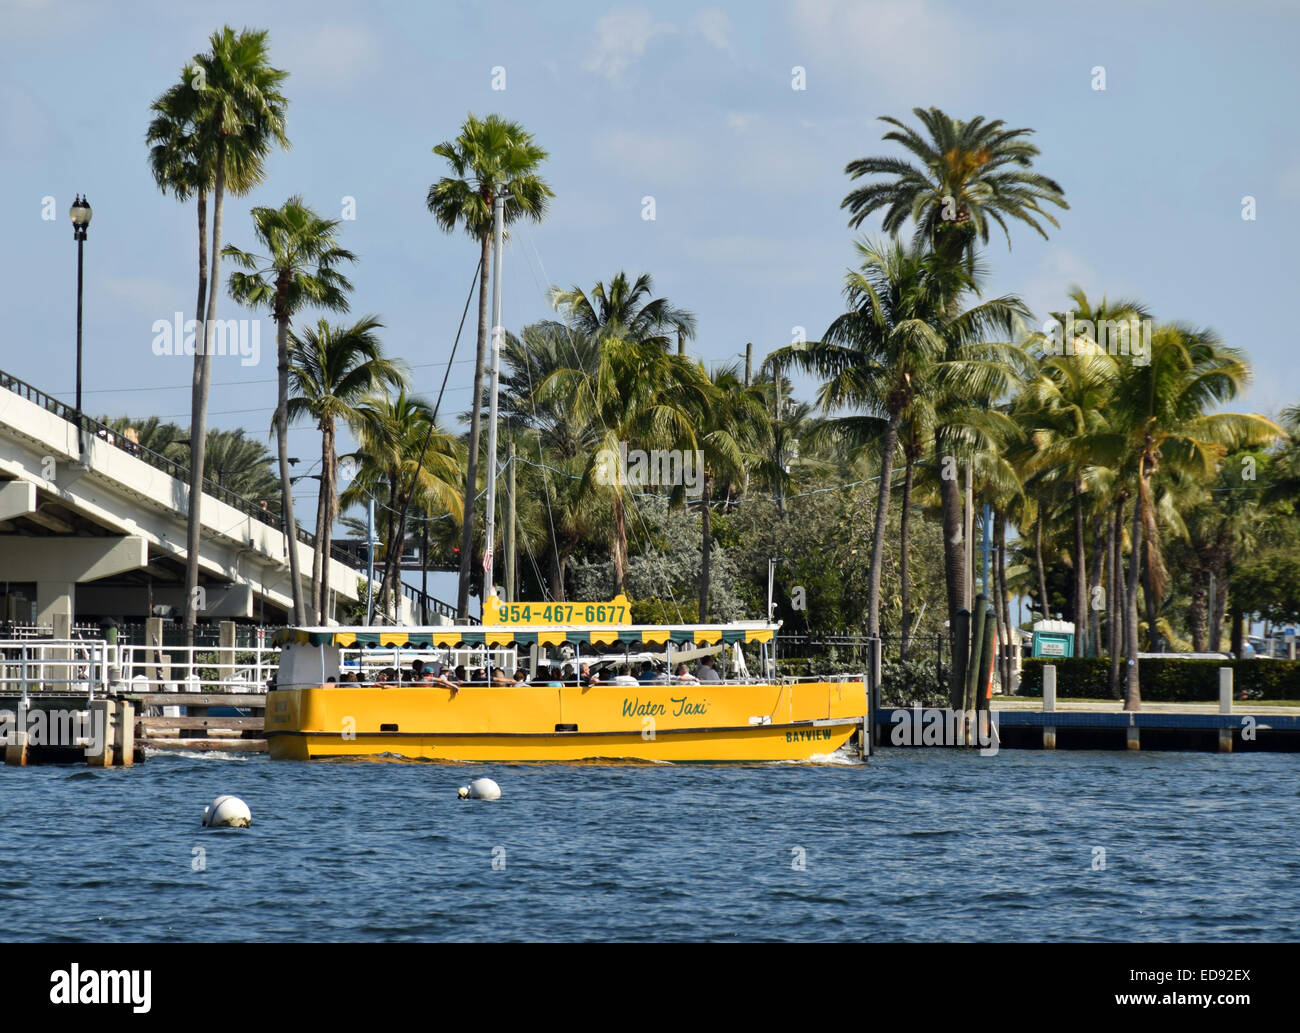 FORT LAUDERDALE - NOVEMBER 15: Tourists enjoy a trip along Fort Lauderdale's waterways aboard a water taxi on November Stock Photo